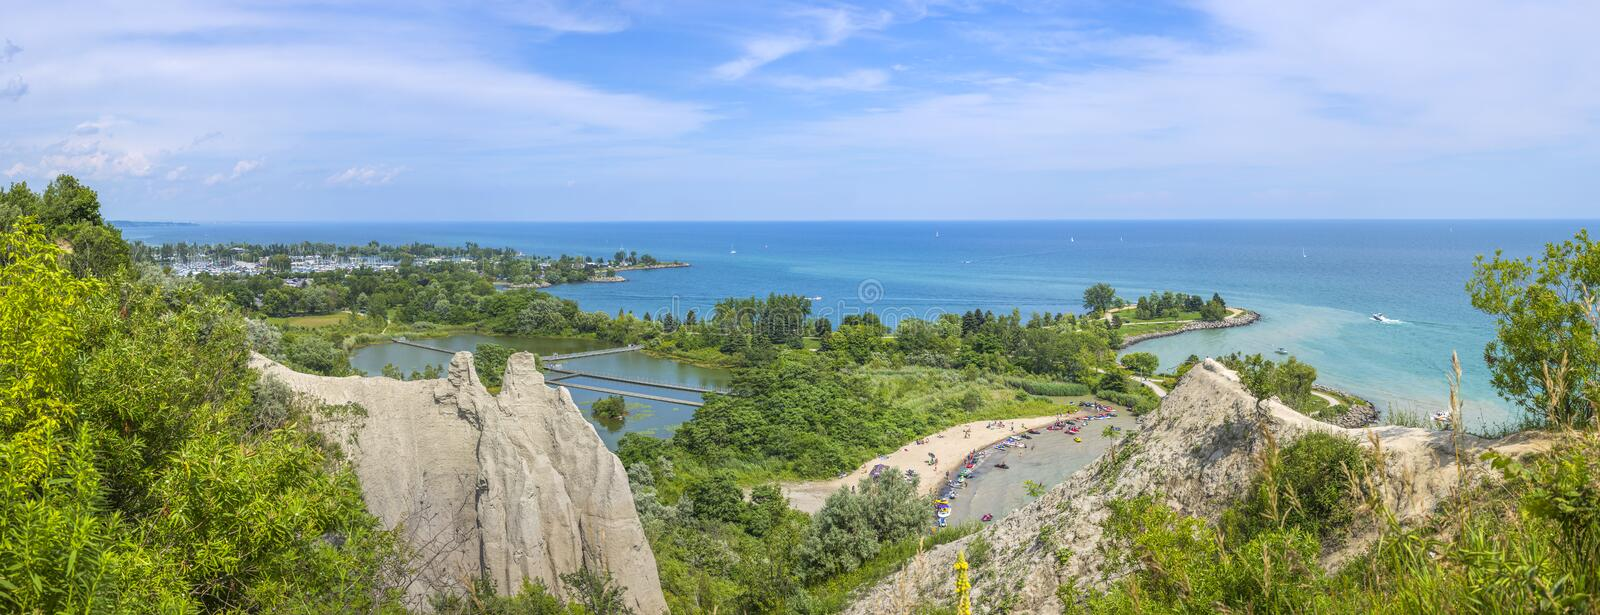 Panorama van Scarborough Bluffs Toronto, Canada stock afbeeldingen